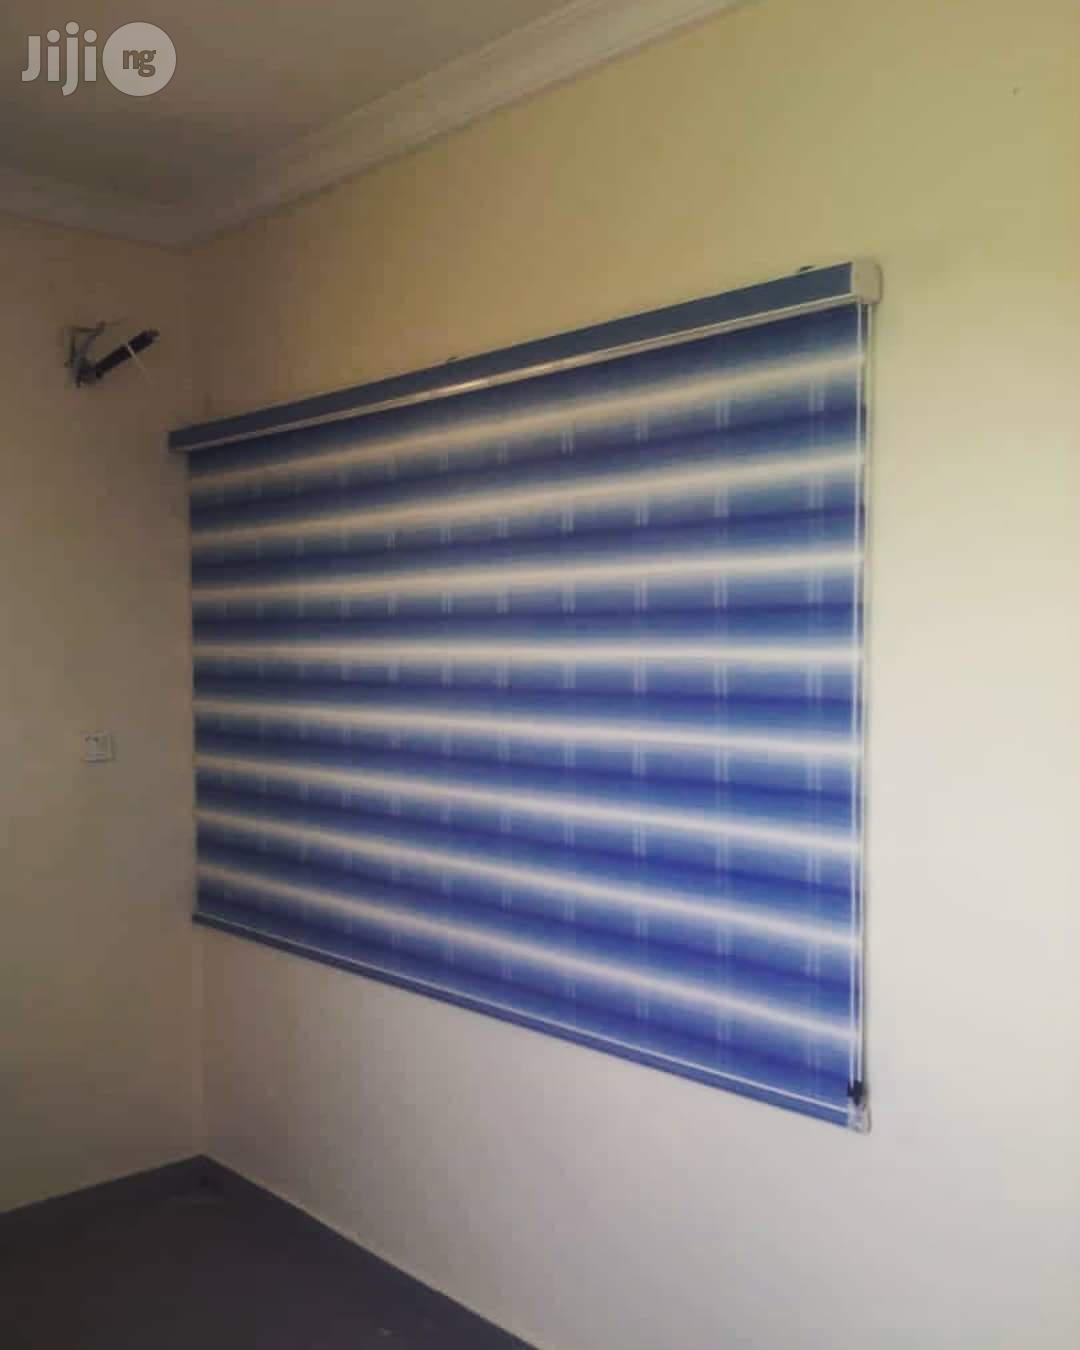 Window Blind | Home Accessories for sale in Ikotun/Igando, Lagos State, Nigeria